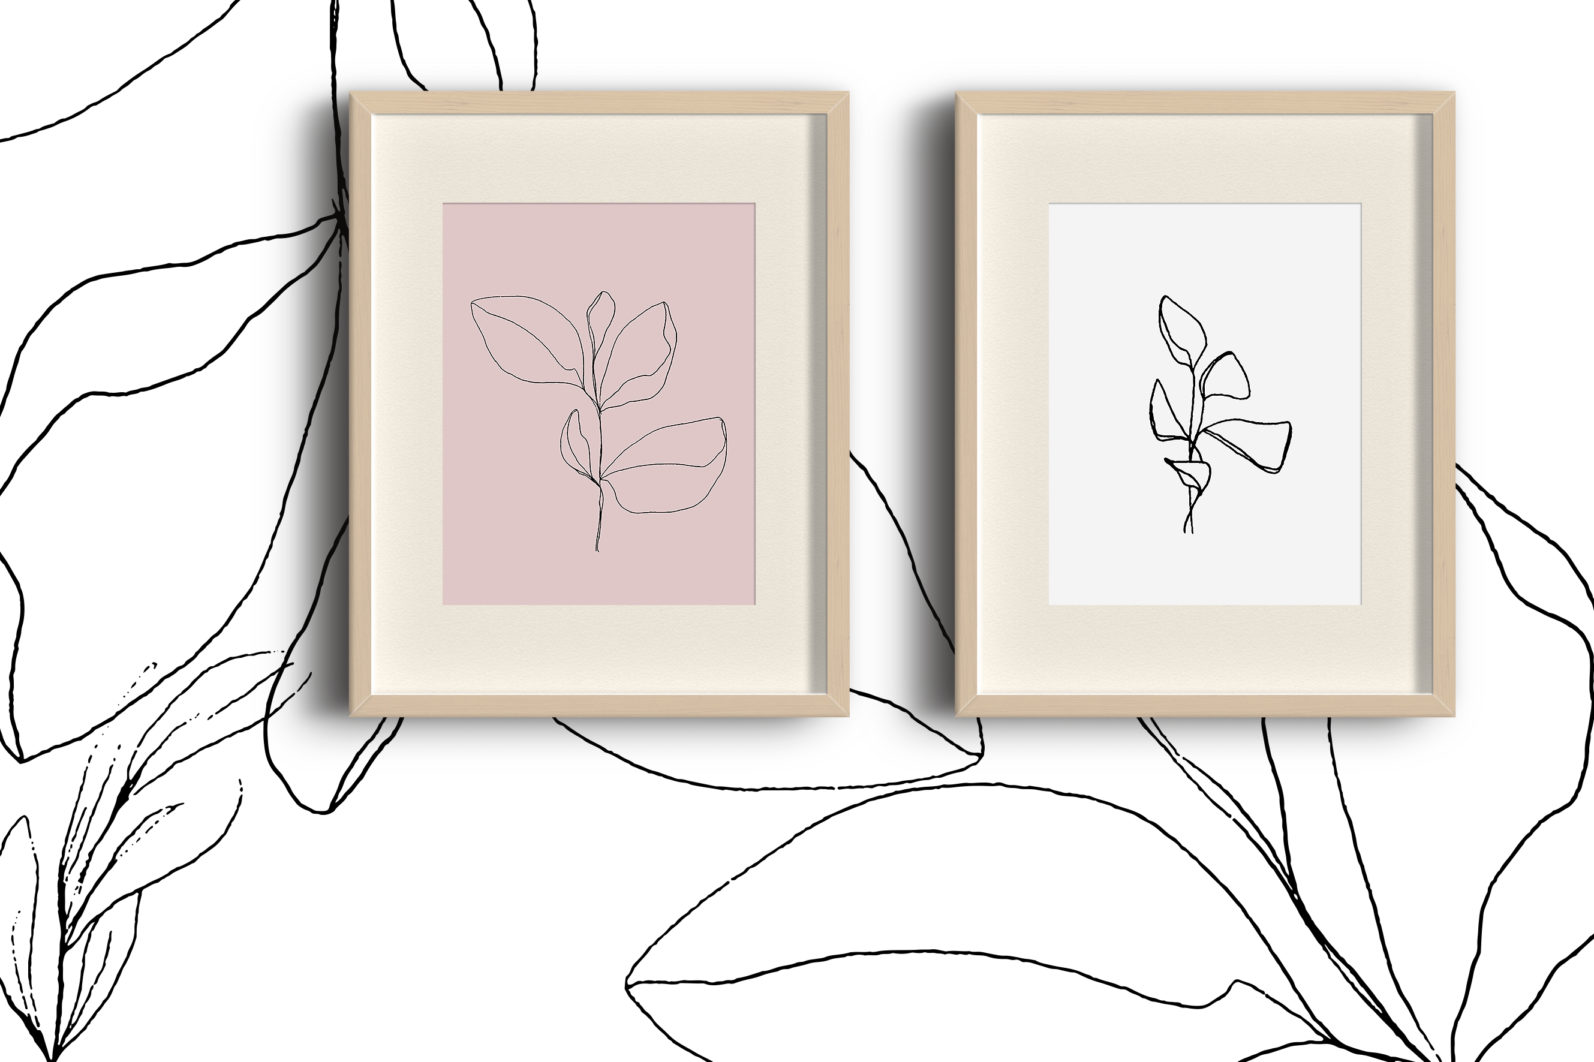 Floral pencil drawing one line art elements, Vector - etsy pencil preview1 scaled -